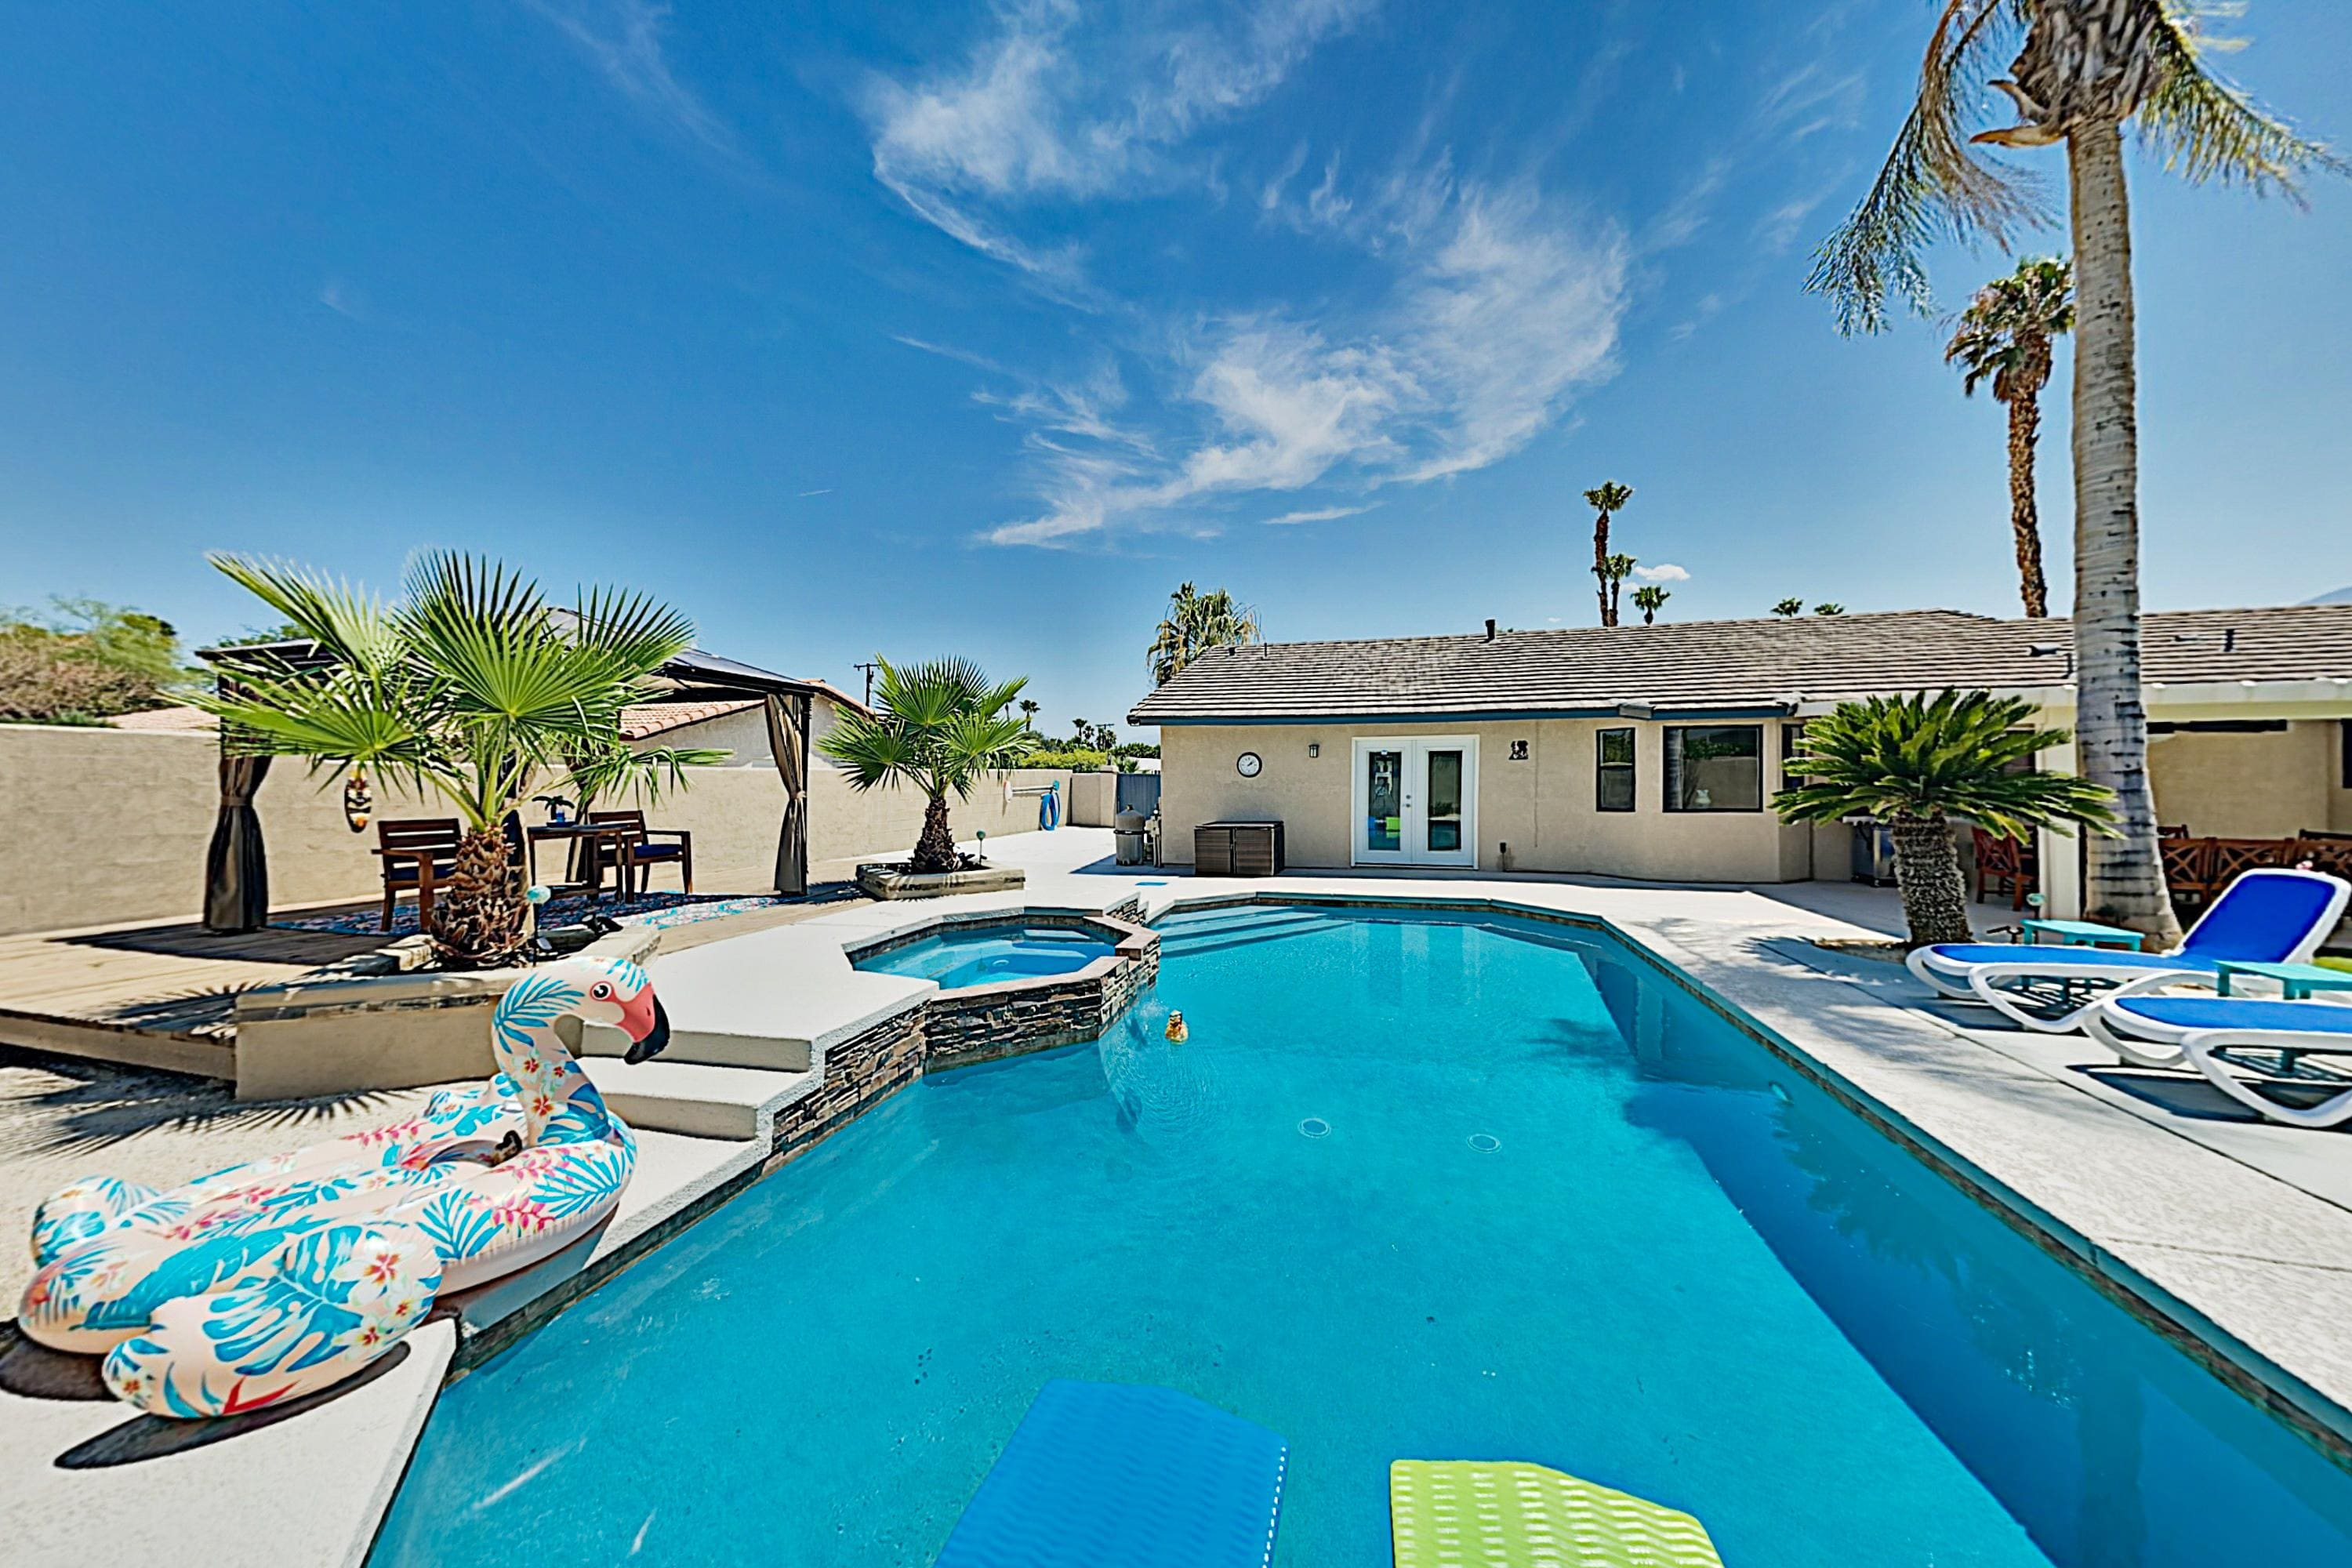 Property Image 1 - 3BR/2BA Luxe Retreat in Desert Park Estates w/ Pool & Spa